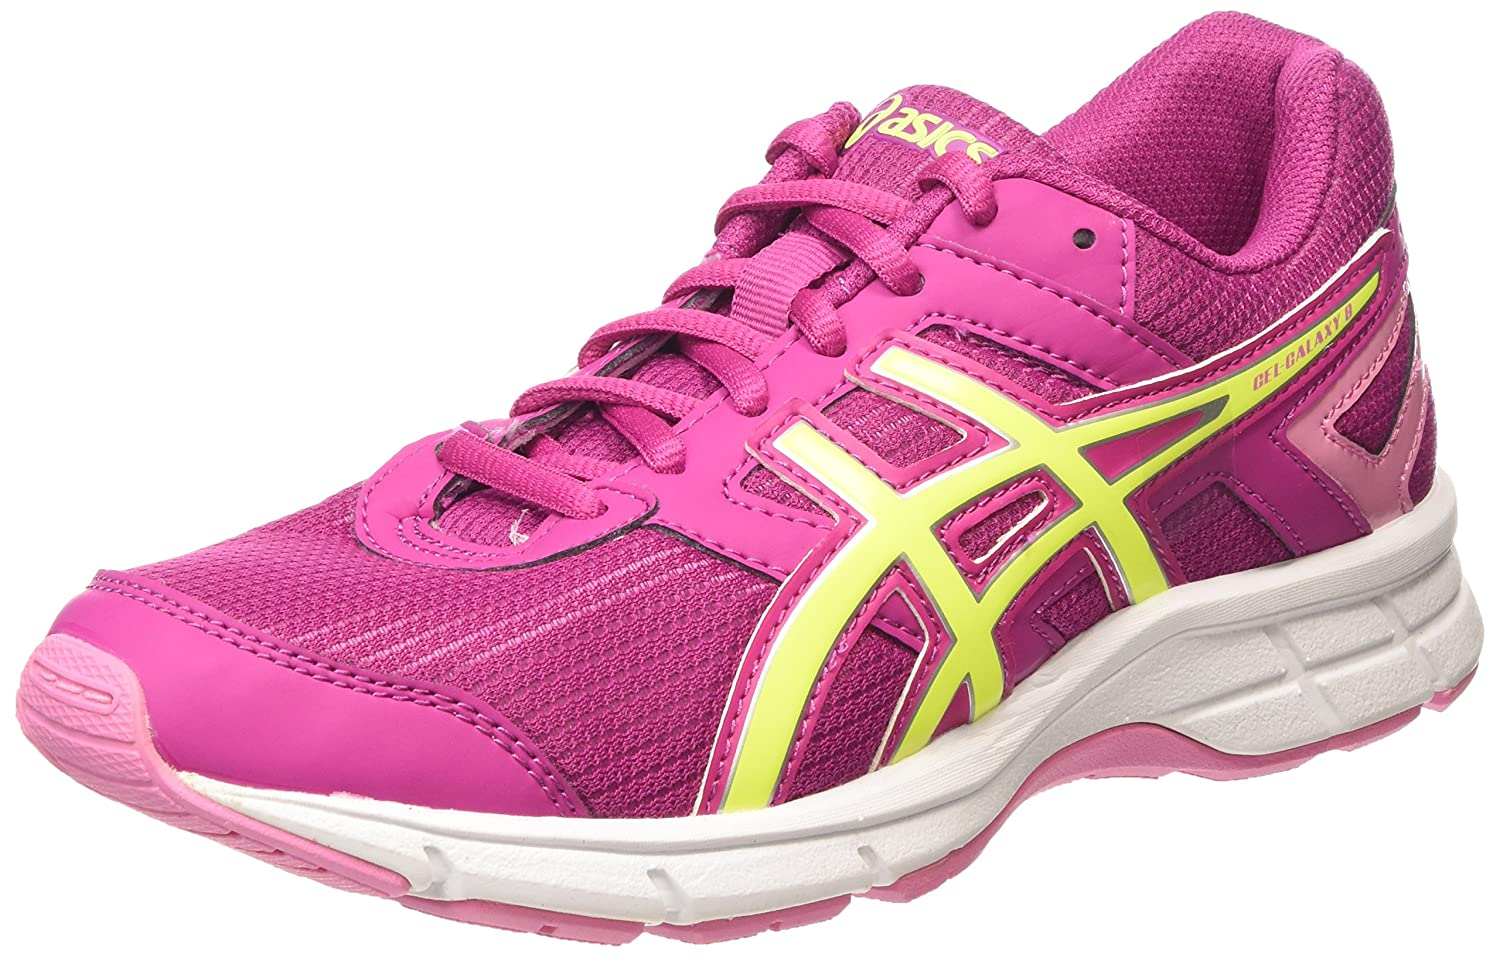 Asics - Gel-Galaxy 8 GS, Zapatillas de Running Niñas C520N-2107-1